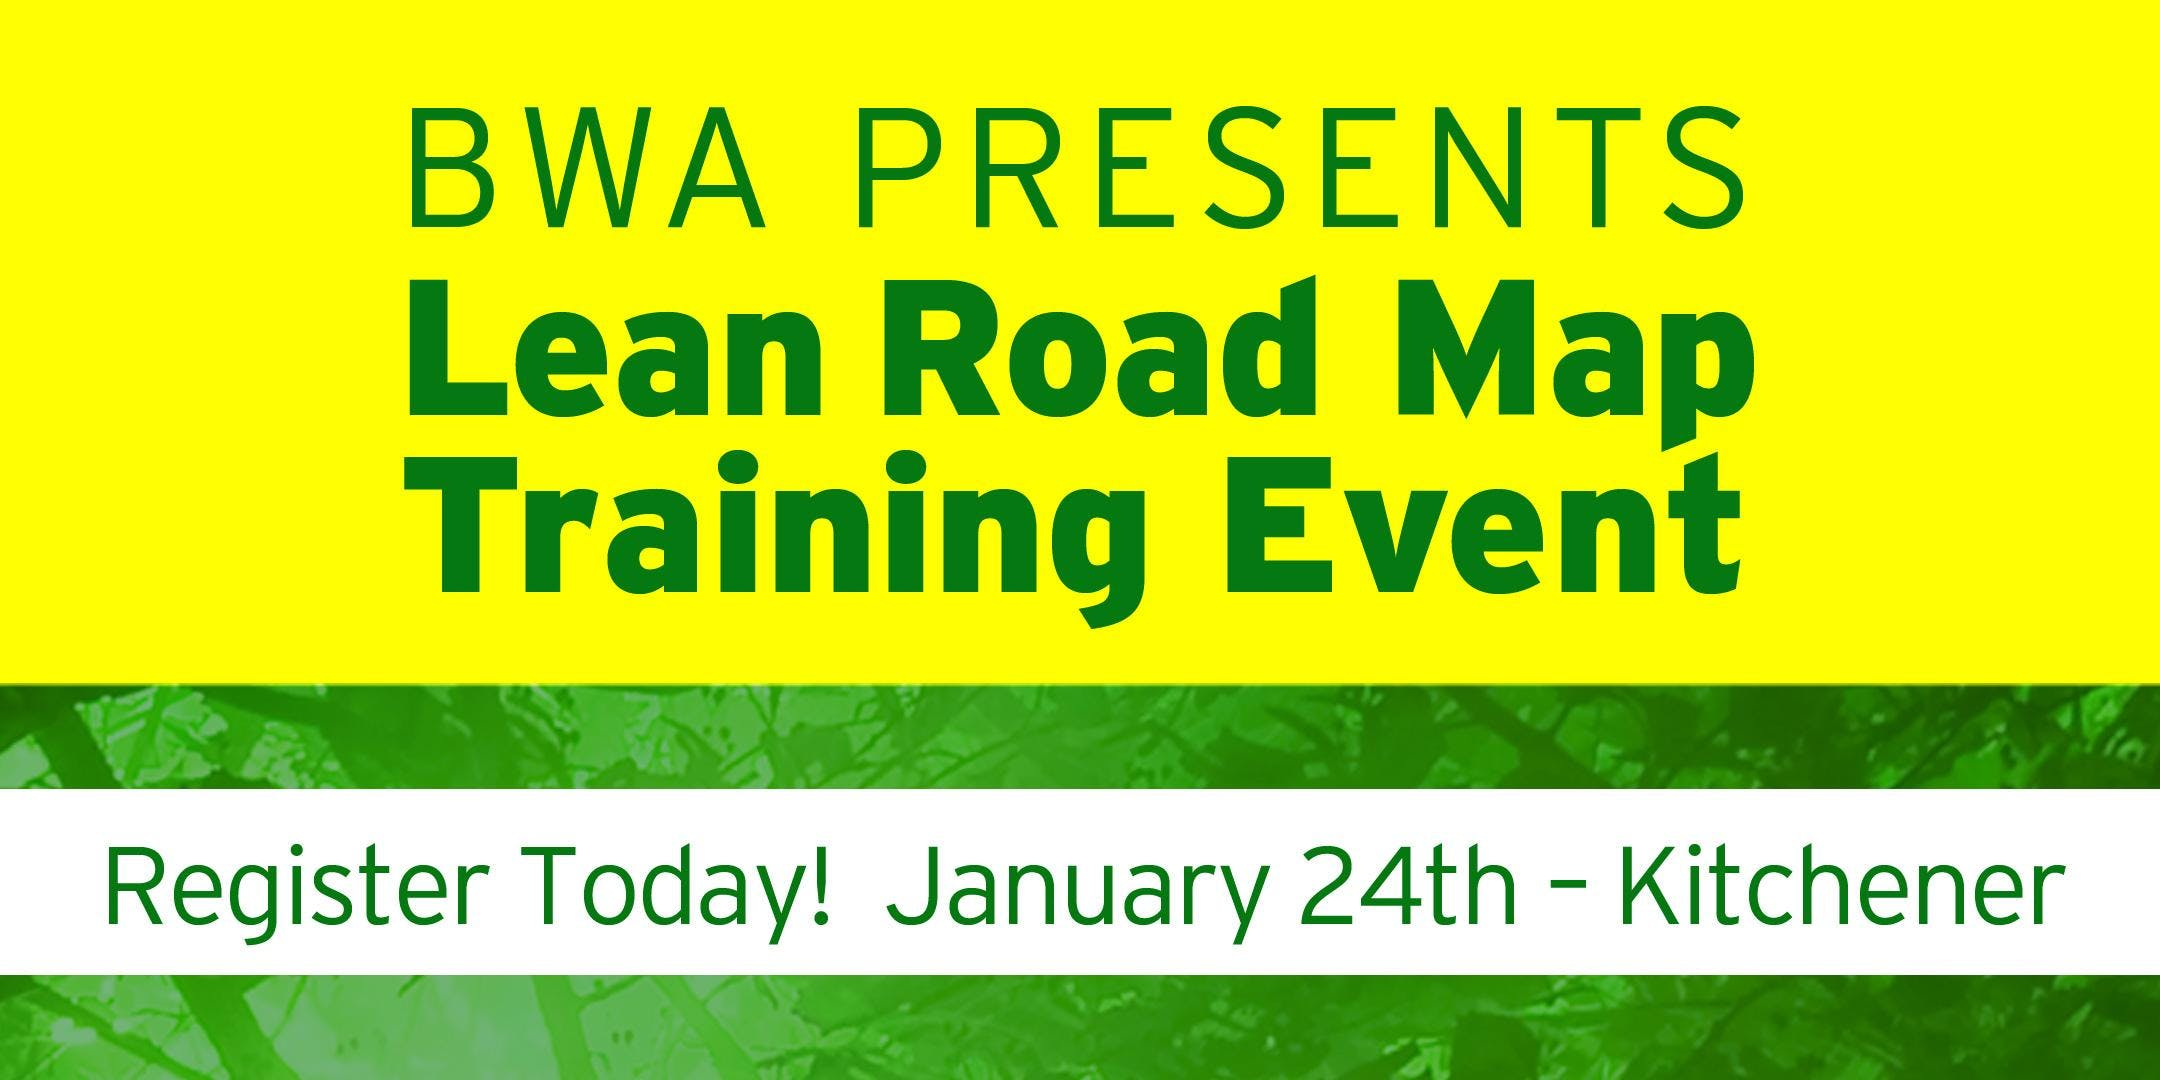 BWA's Lean Road Map Training Event